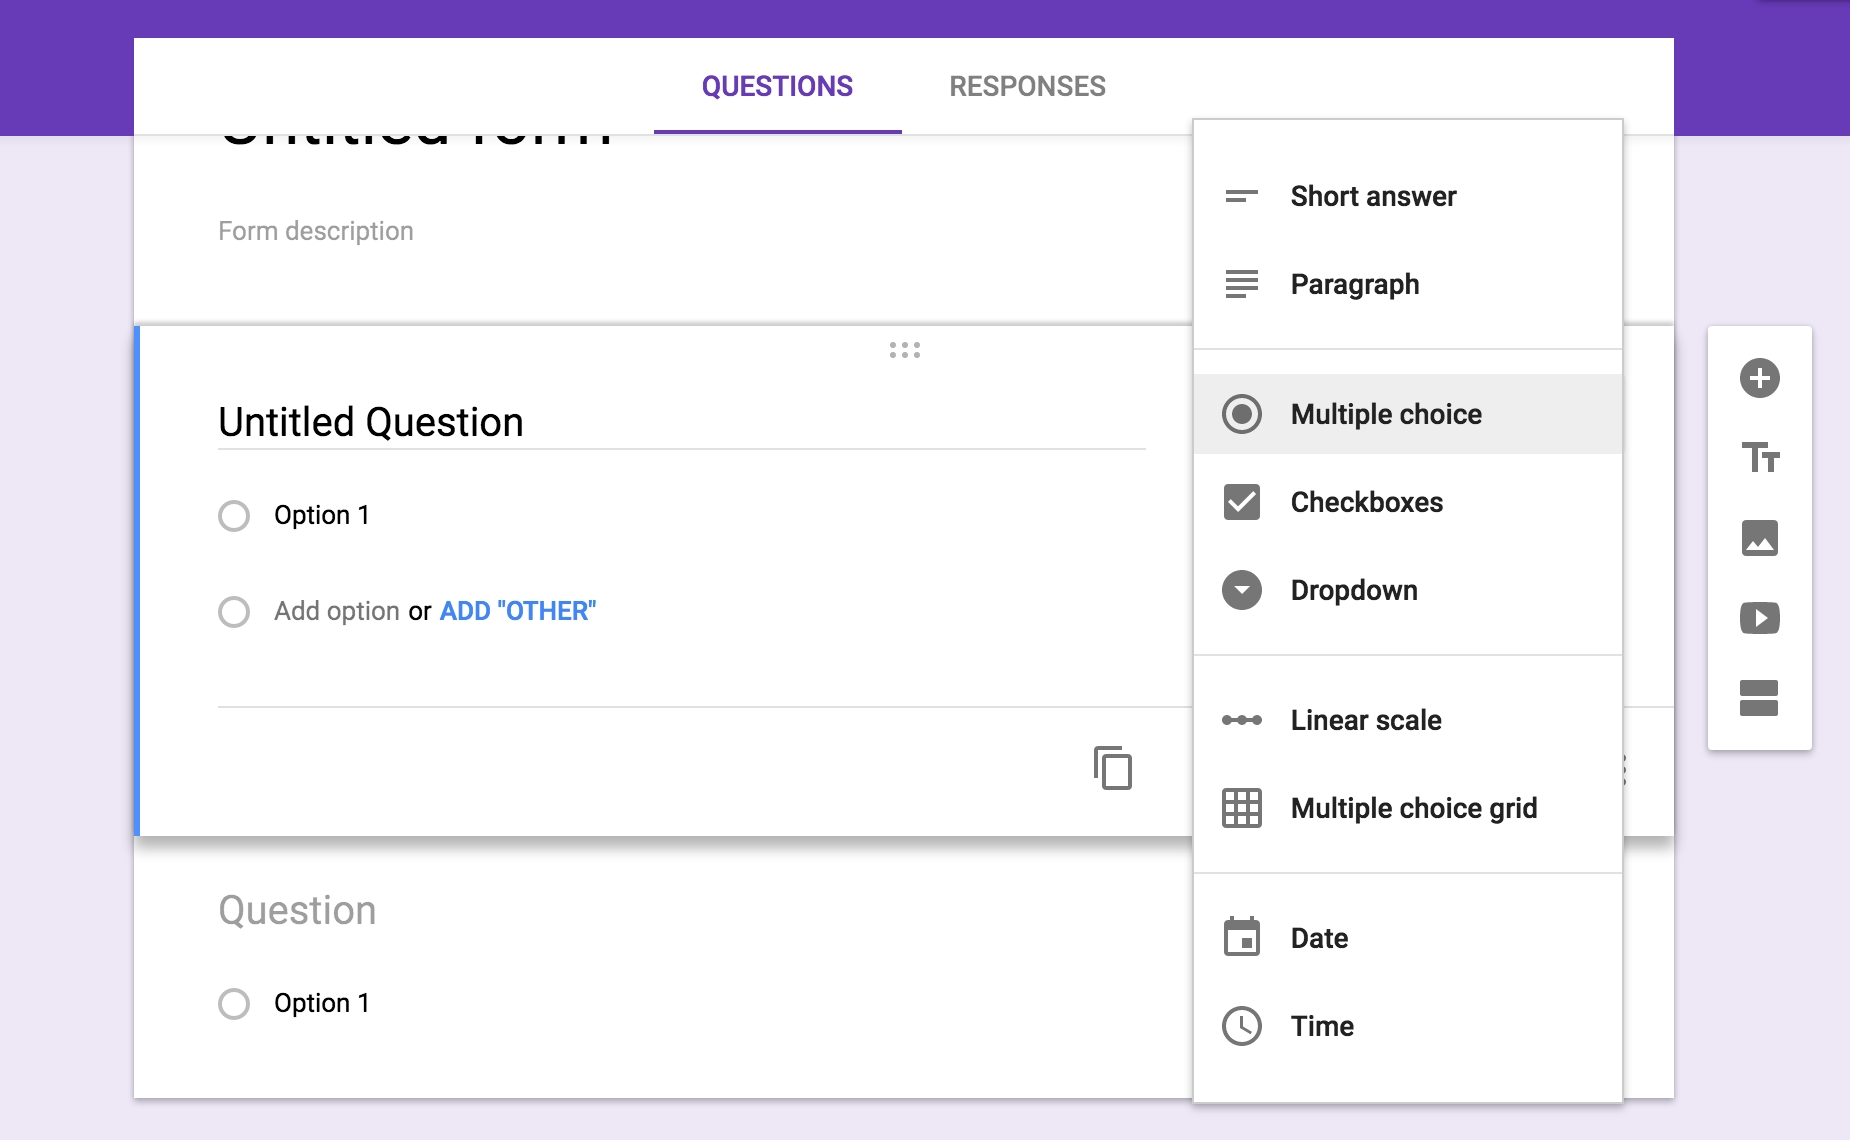 Google Forms Guide: Everything You Need To Make Great Forms For intended for Google Forms Image 25170